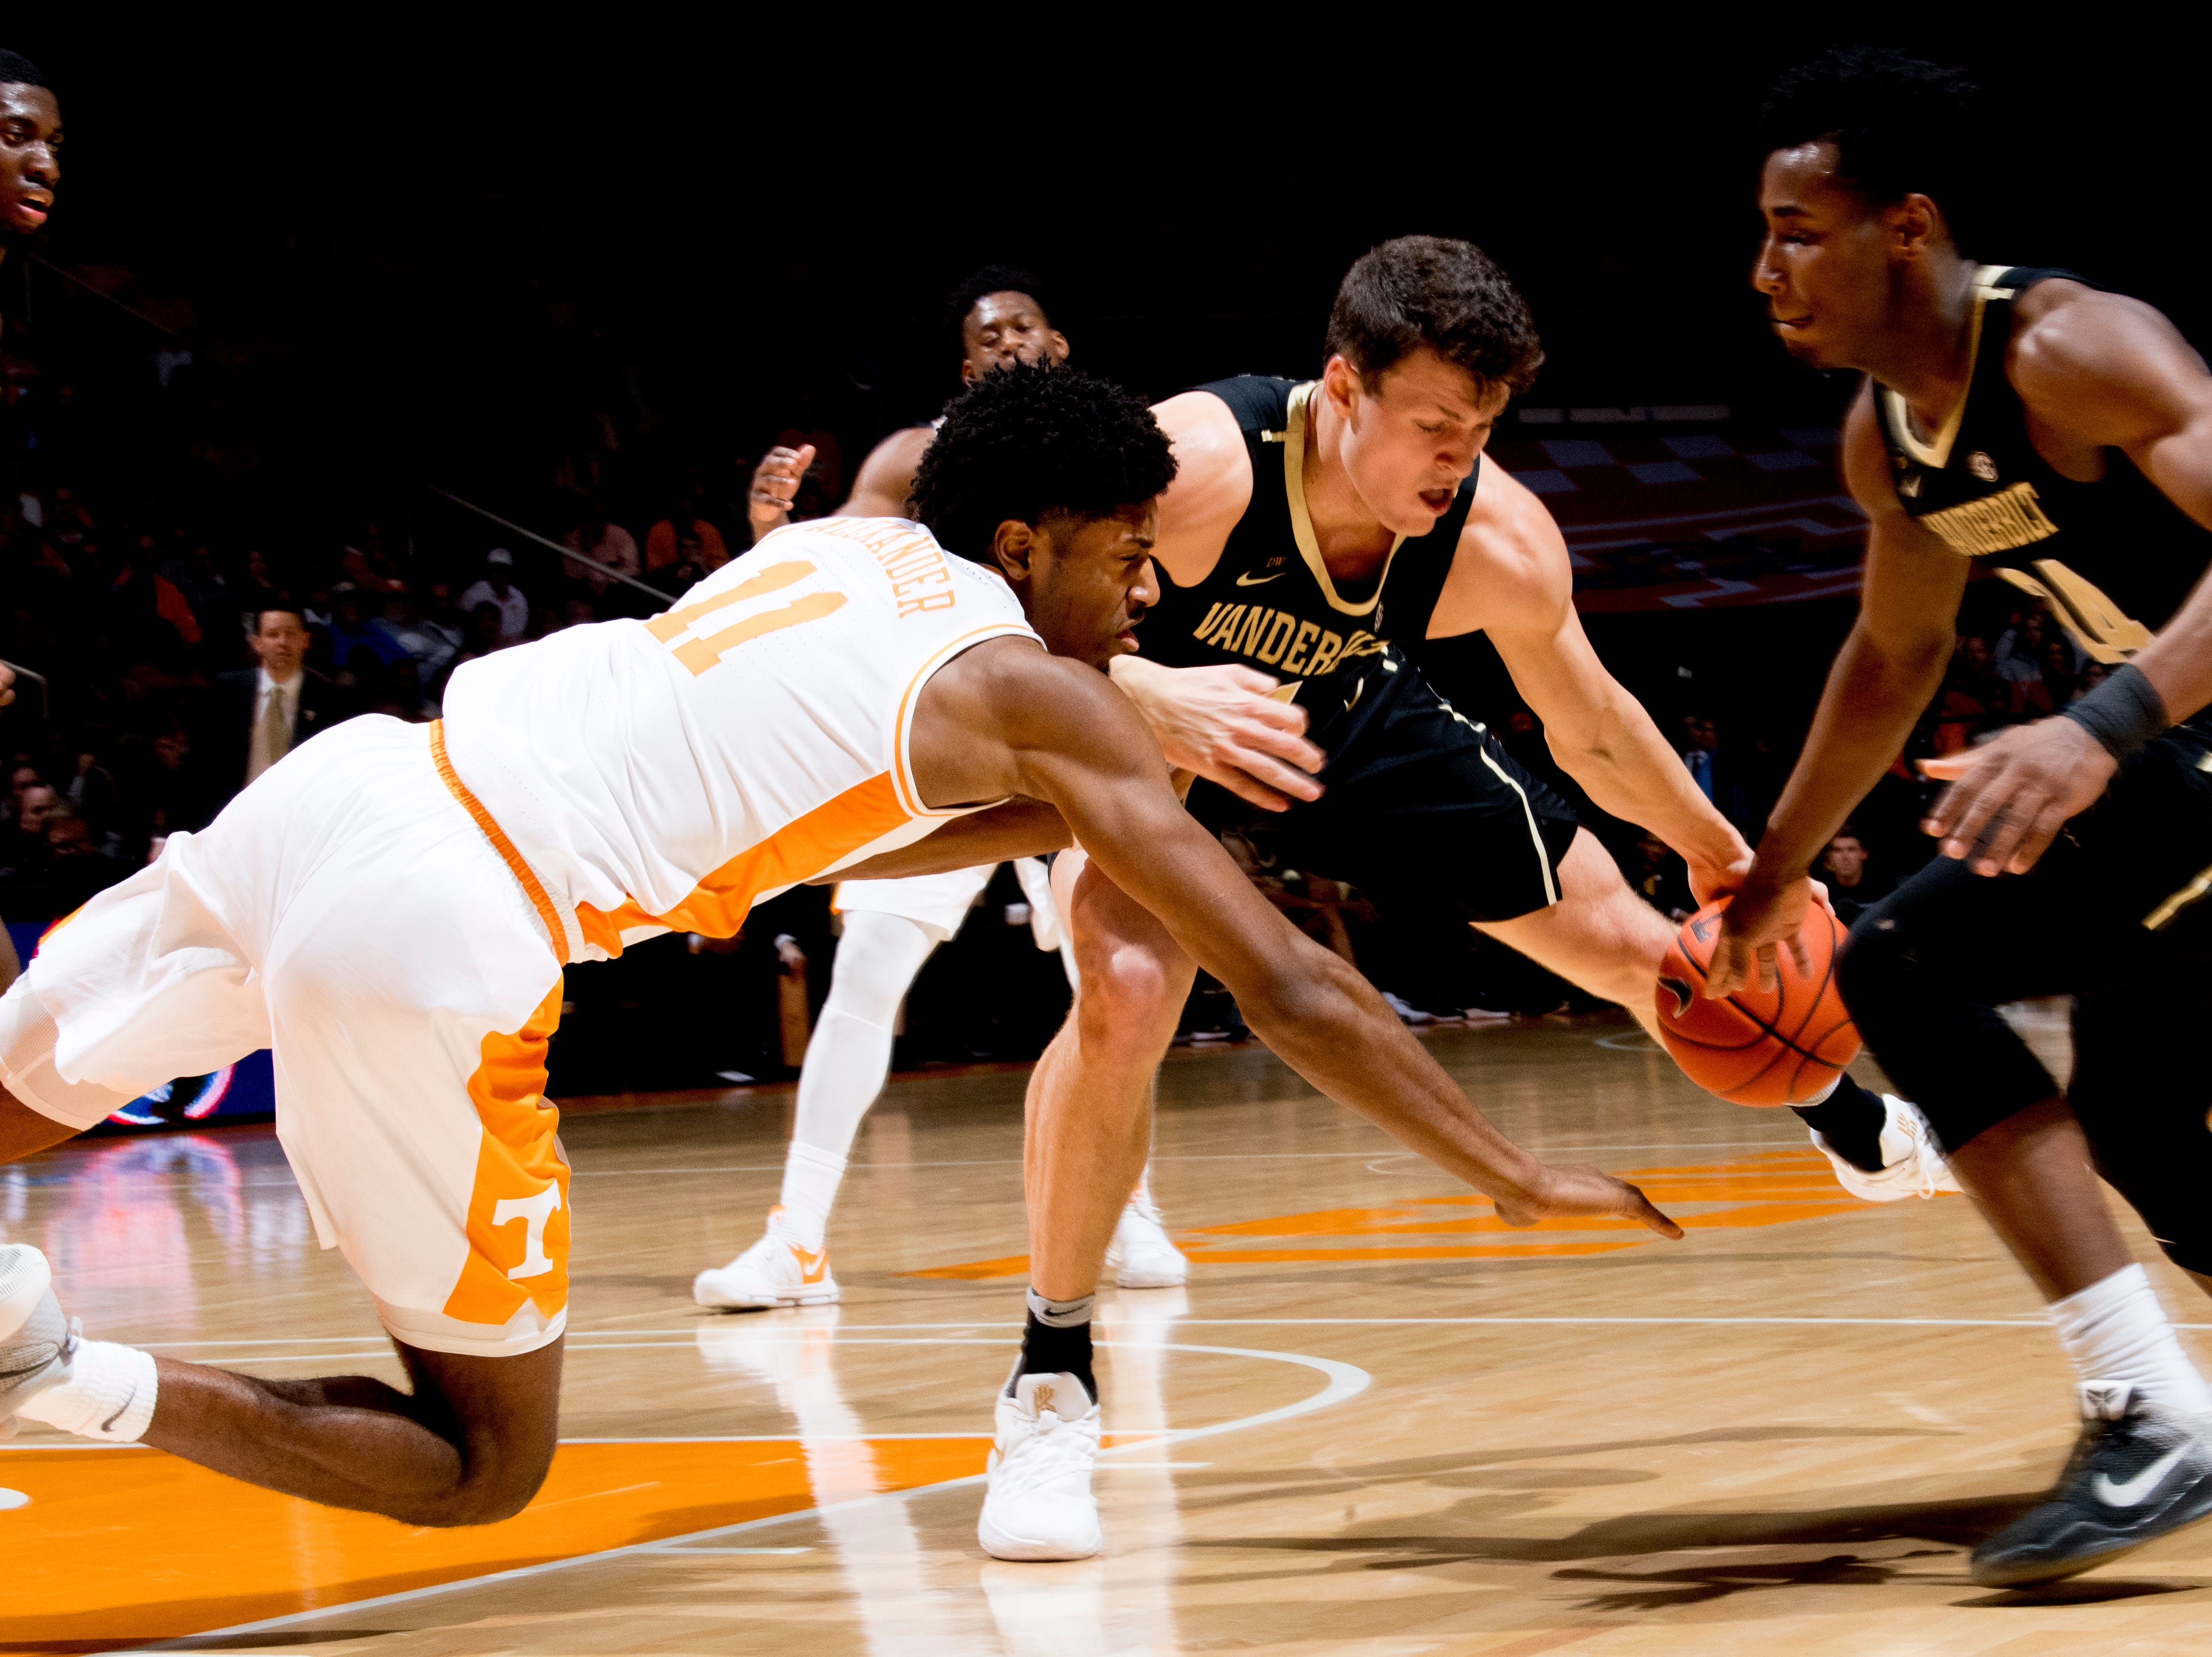 Tennessee forward Kyle Alexander (11) and Vanderbilt forward/center Yanni Wetzell (1) lose the ball during a game between Tennessee and Vanderbilt at Thompson-Boling Arena in Knoxville, Tennessee on Tuesday, February 19, 2019.